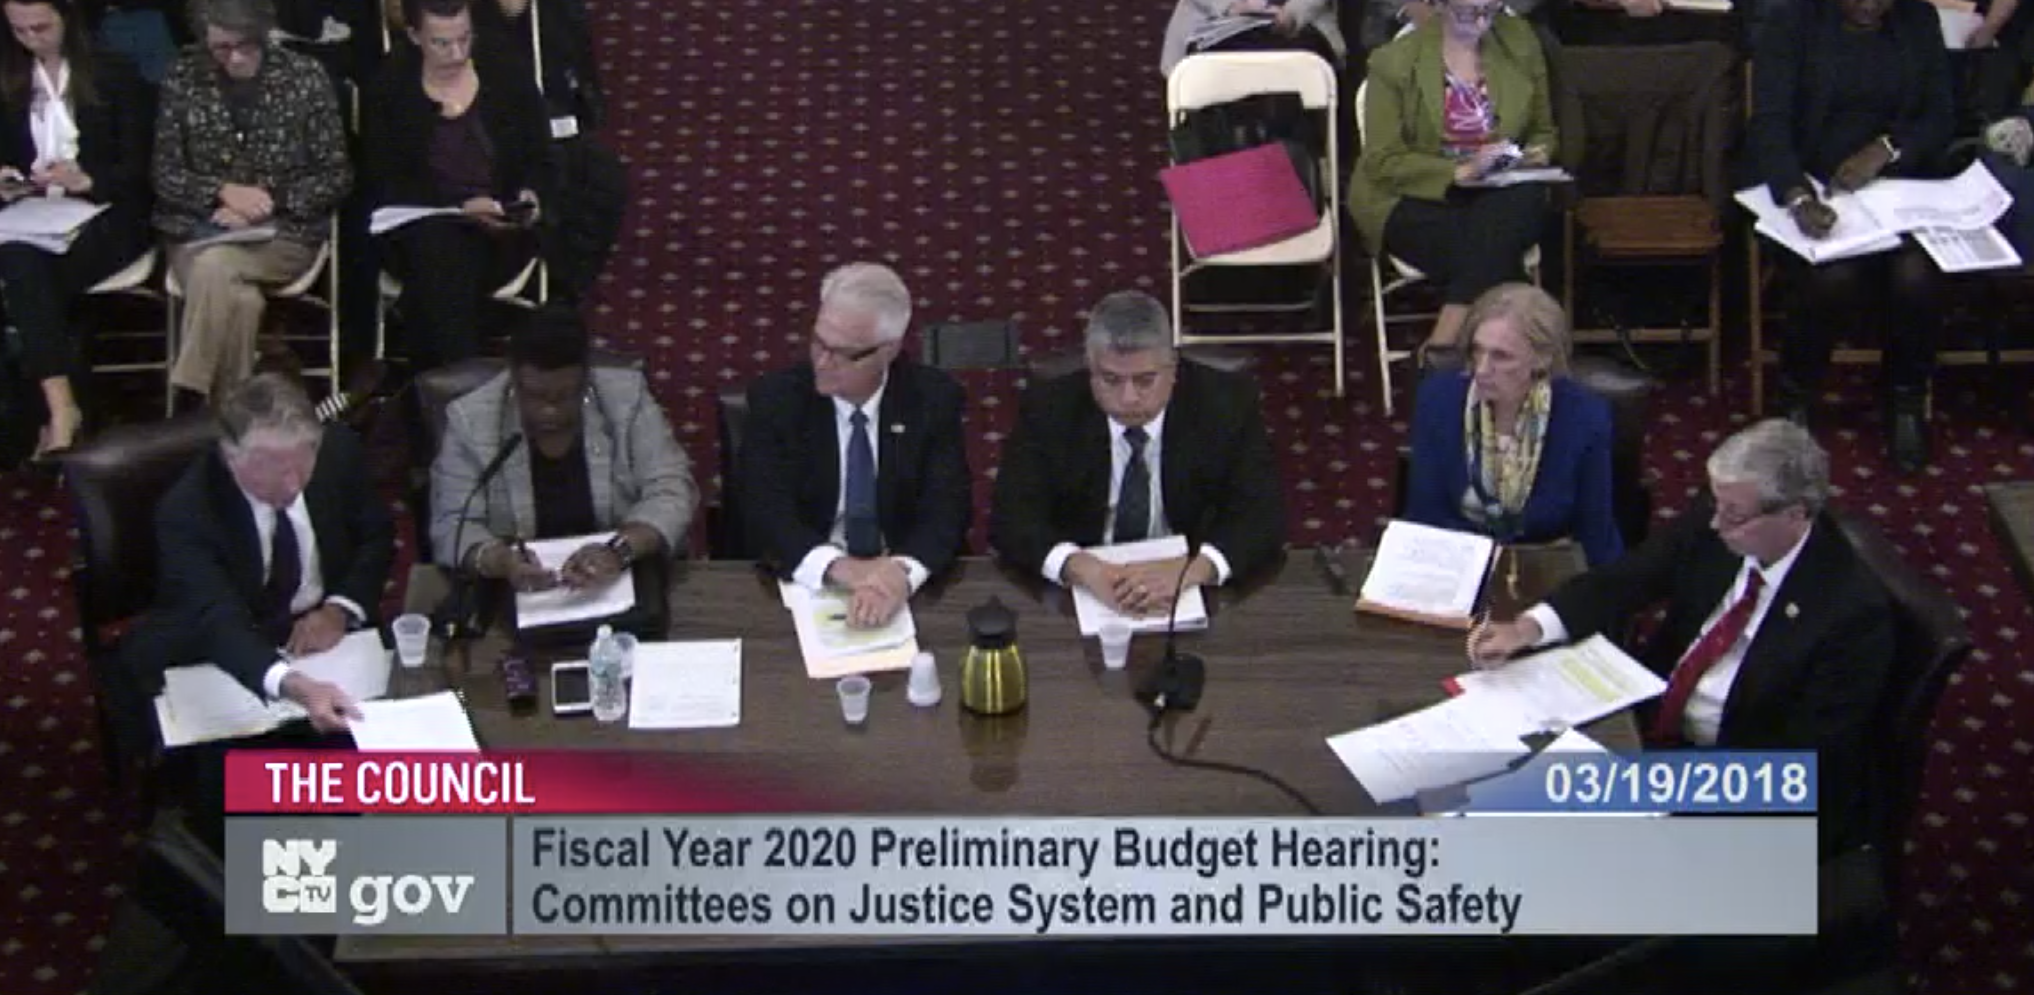 District Attorneys from around the city, including Queens Chief Assistant DA John Ryan (right) discuss funding increases and pay parity for prosecutors. Image via live video feed of City Council hearing